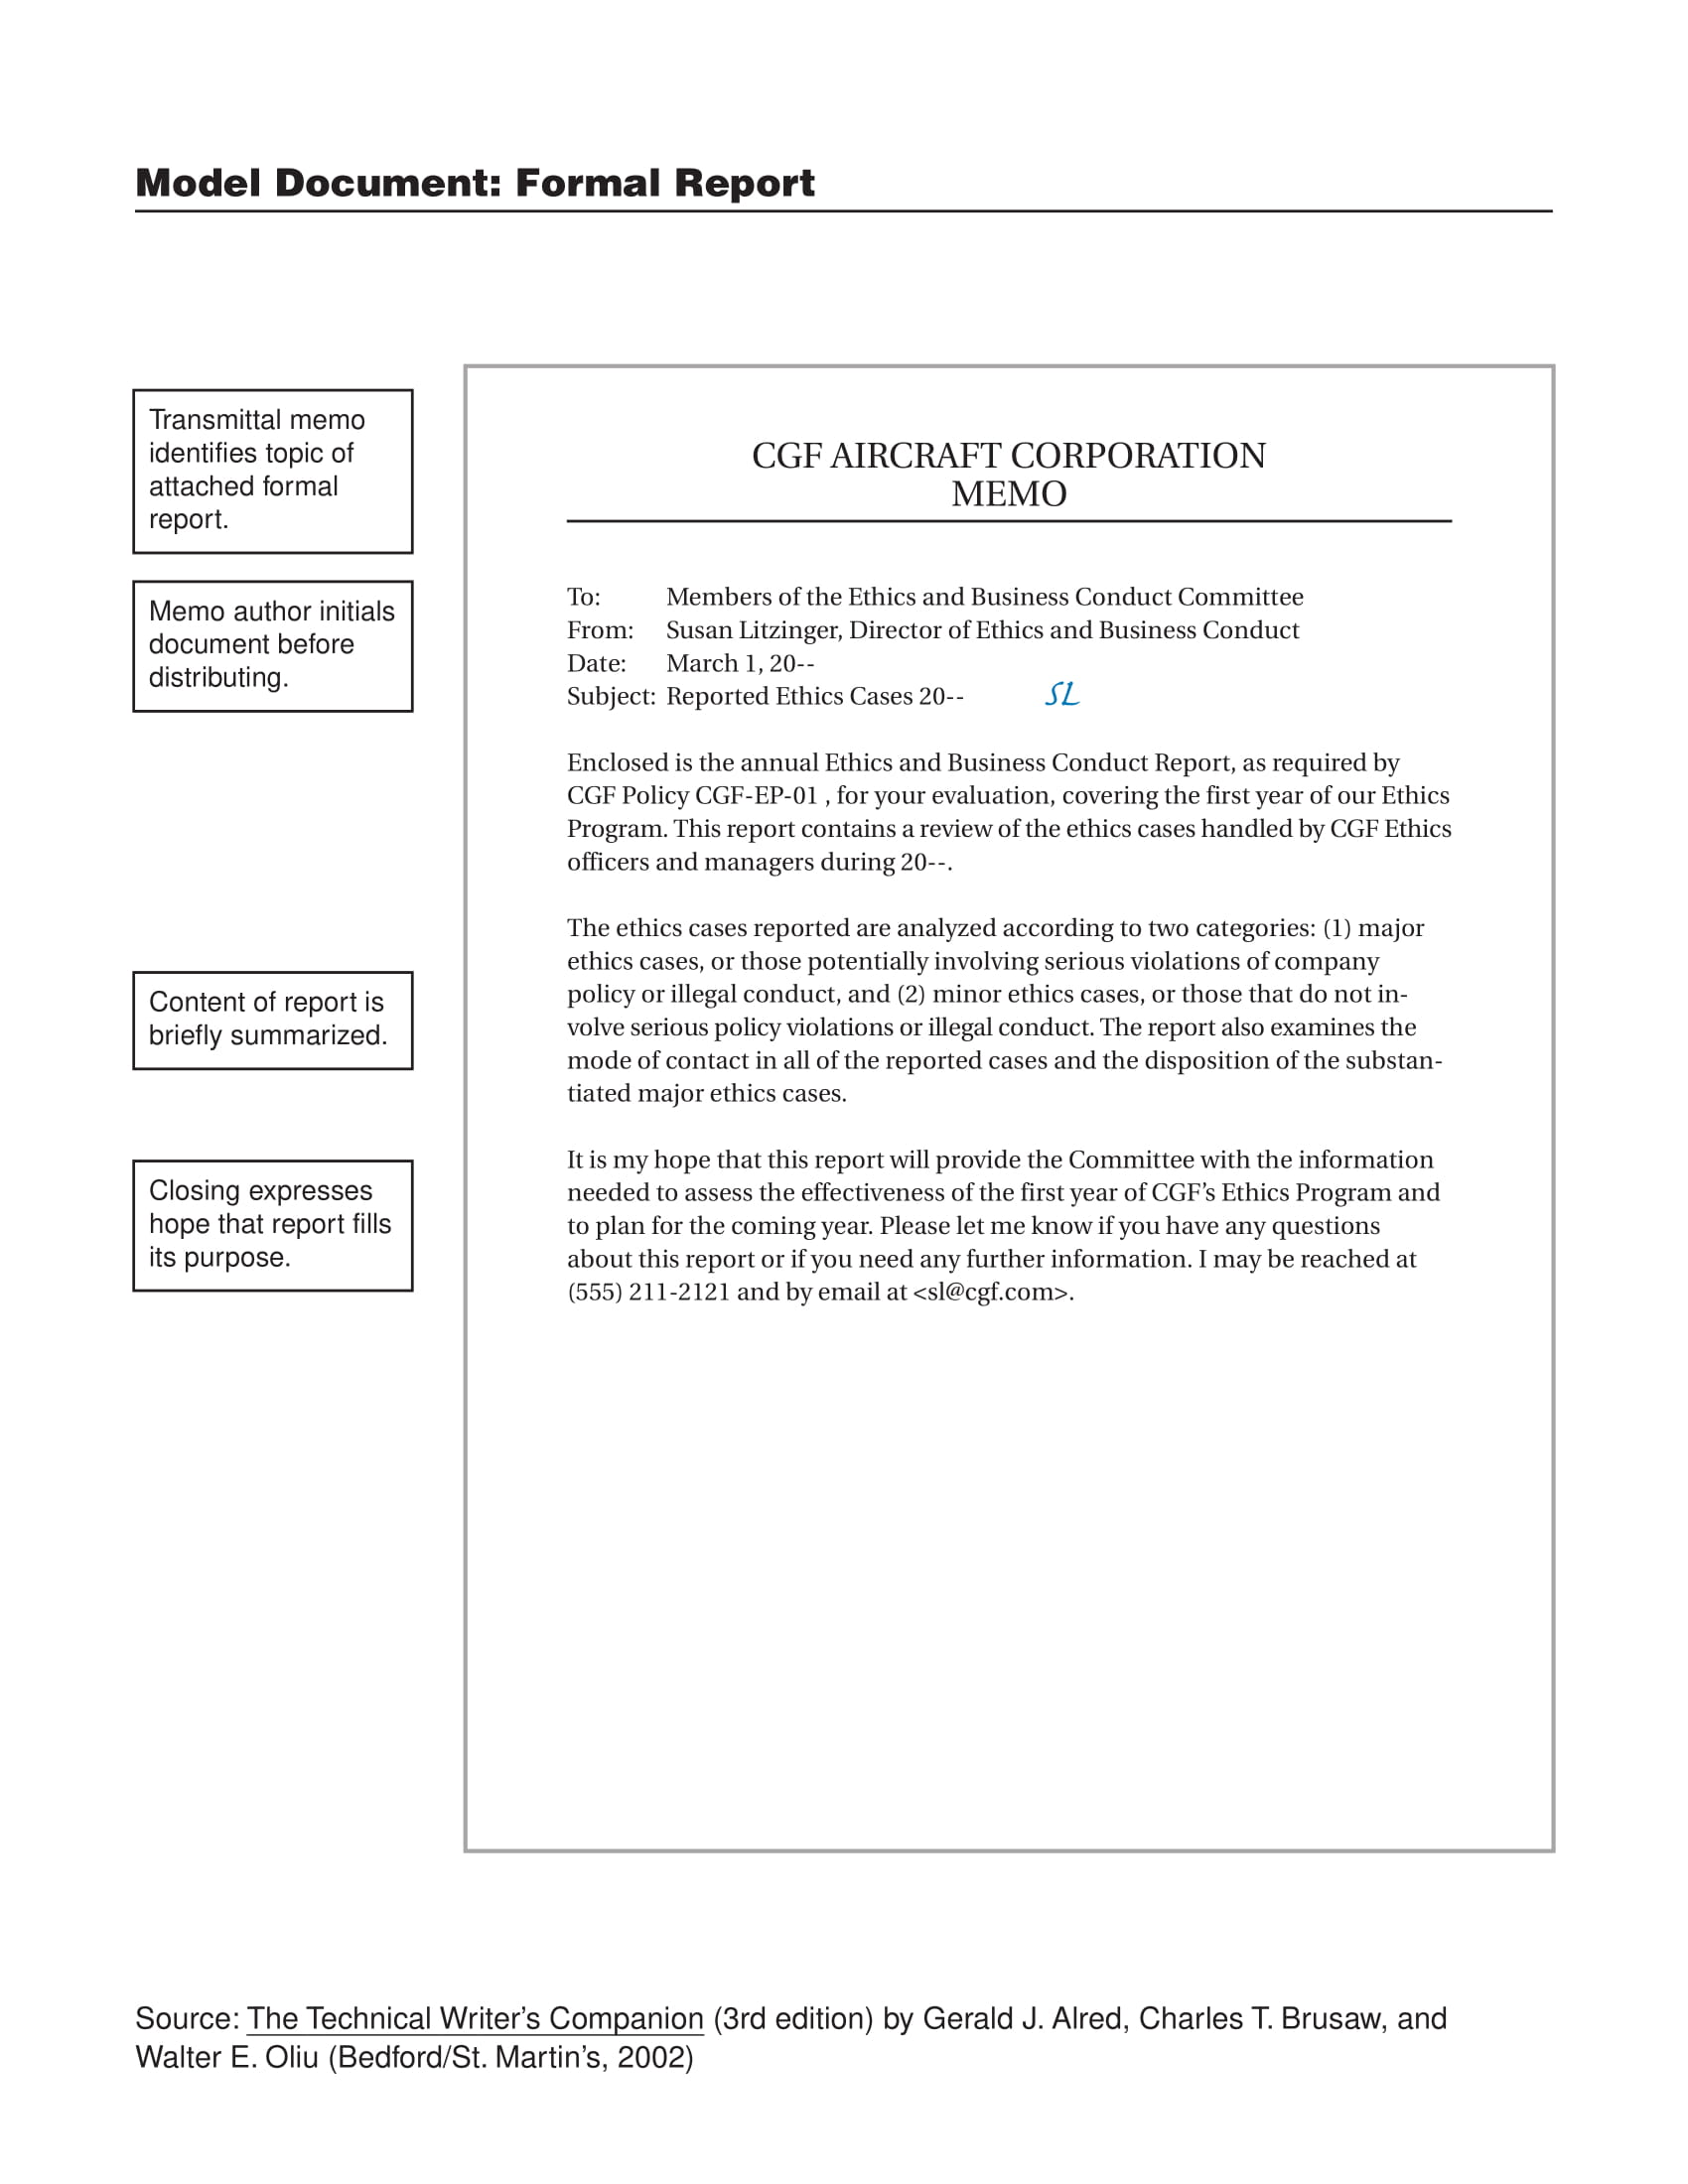 annual ethics and business conduct report example 01